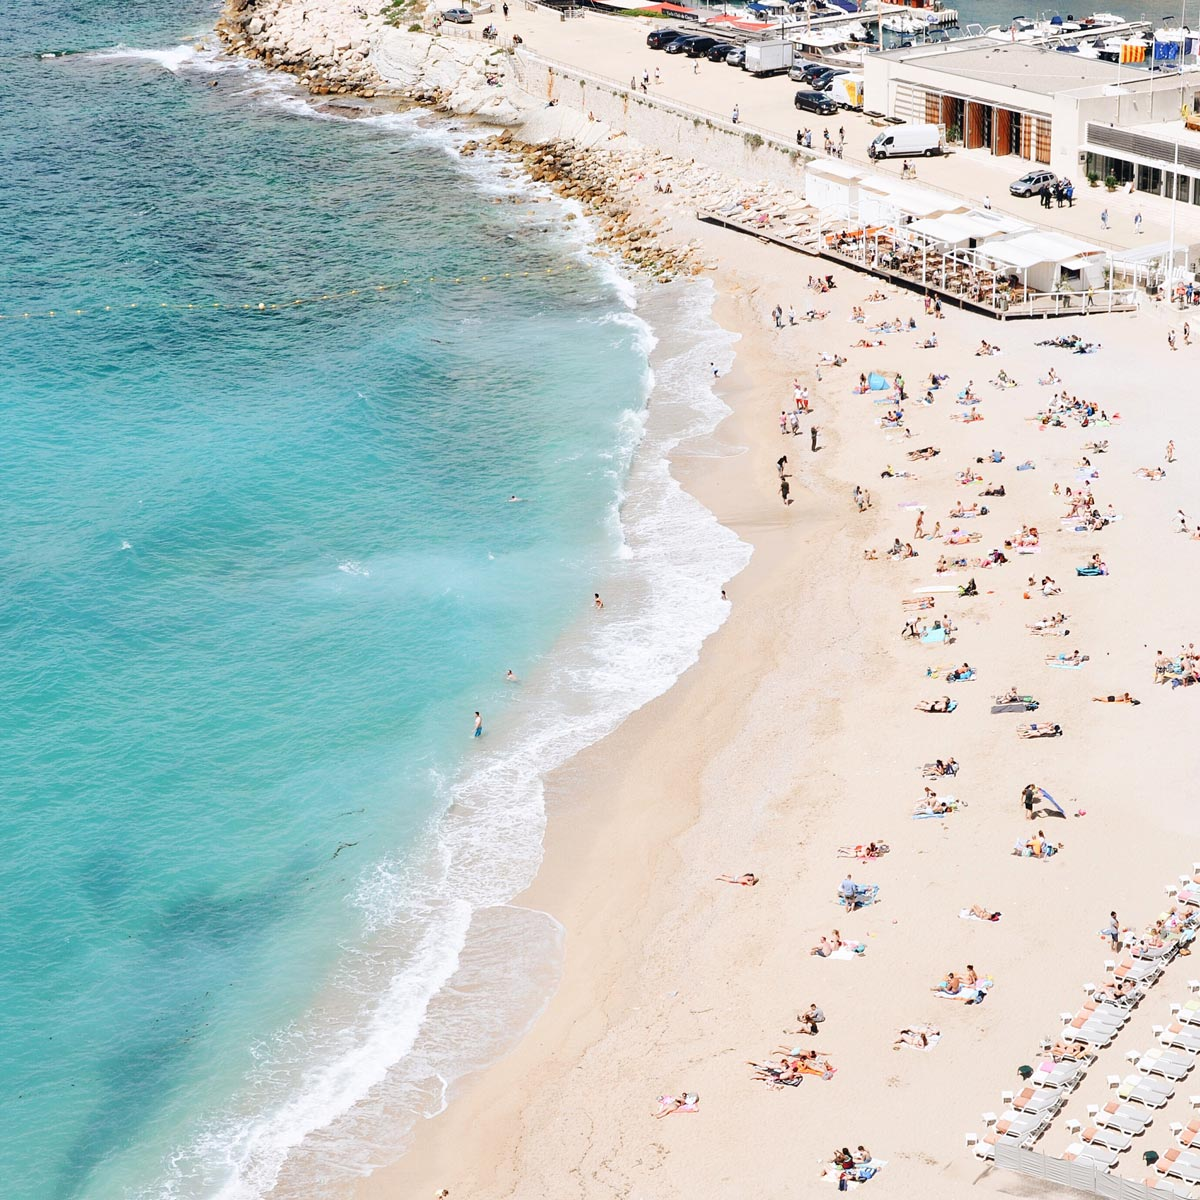 Overhead photo by Lauren Wells of busy beach in Cassis, France